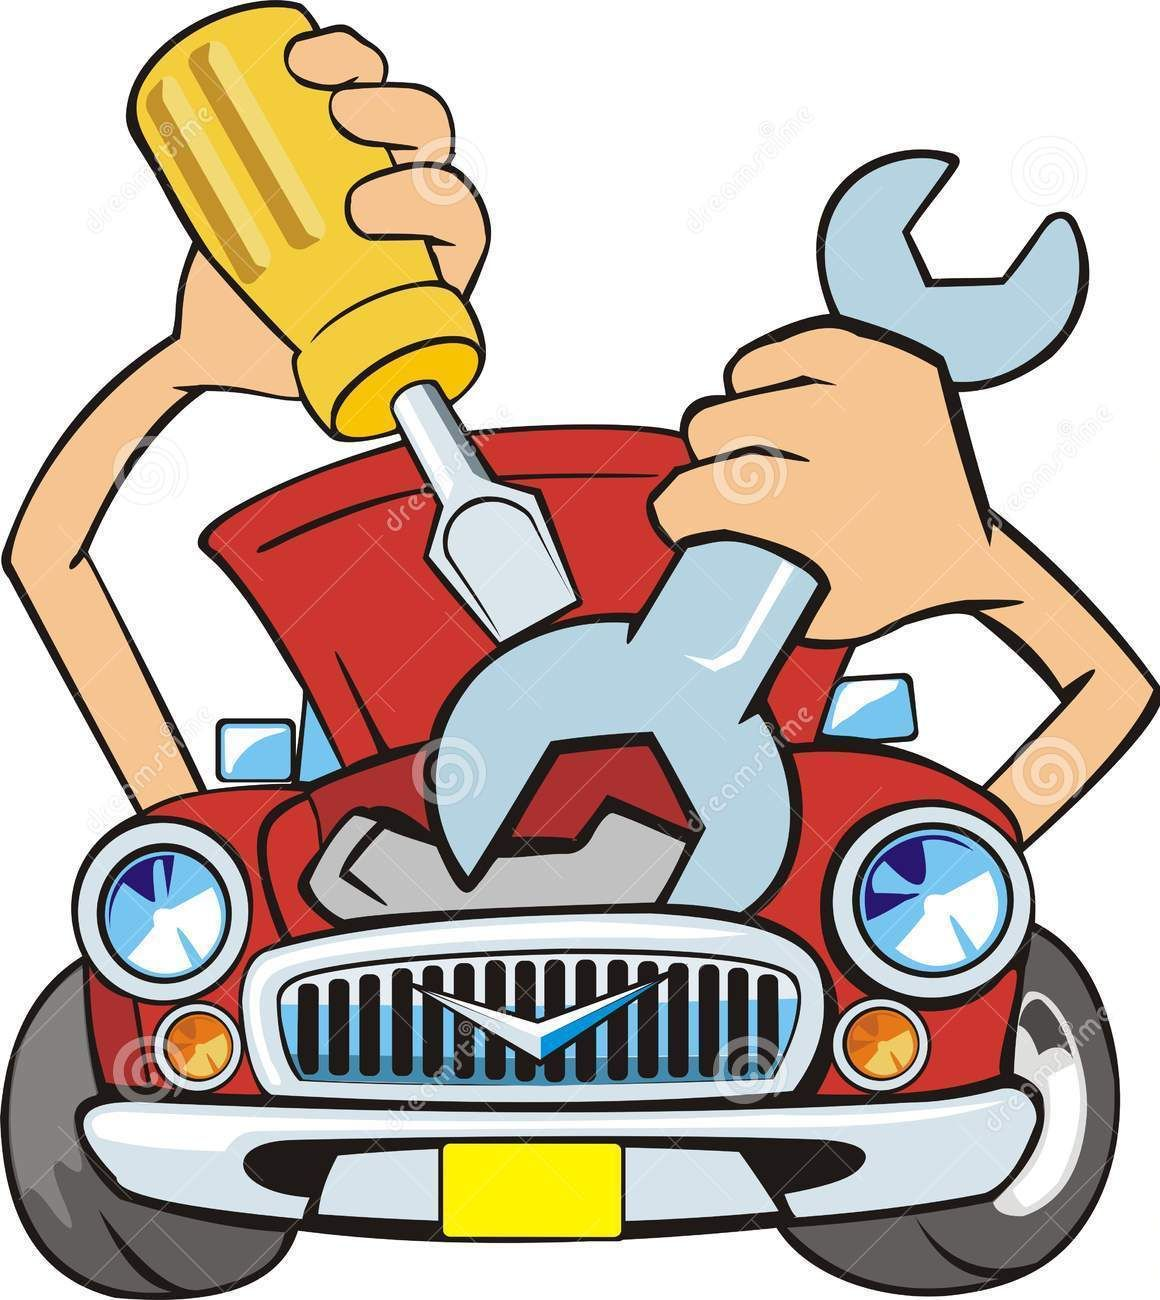 23 Hours your Car is Ready! Mobile mechanic, Car for